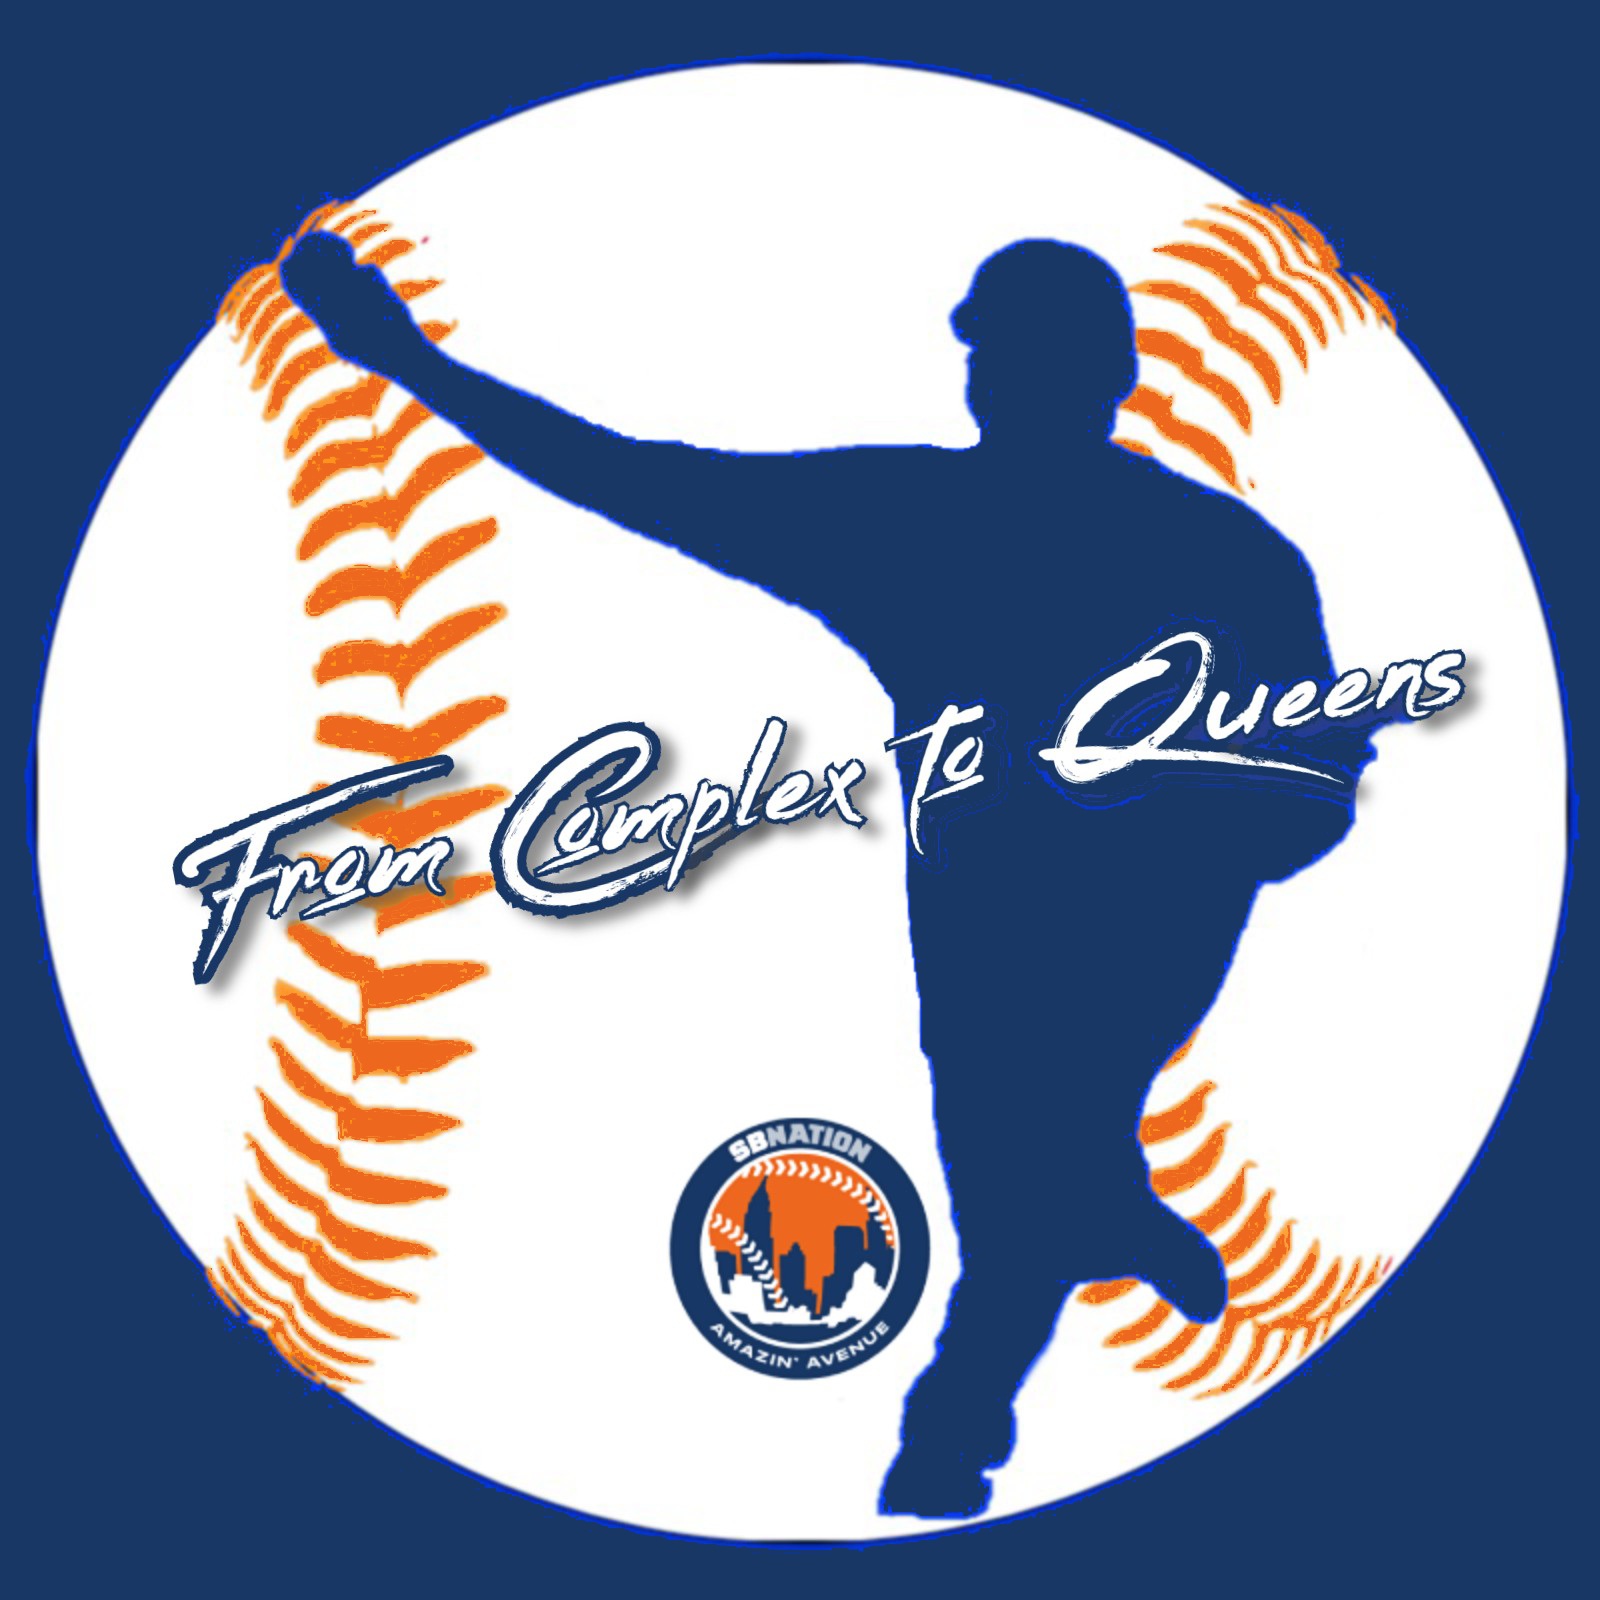 From Complex to Queens Logo